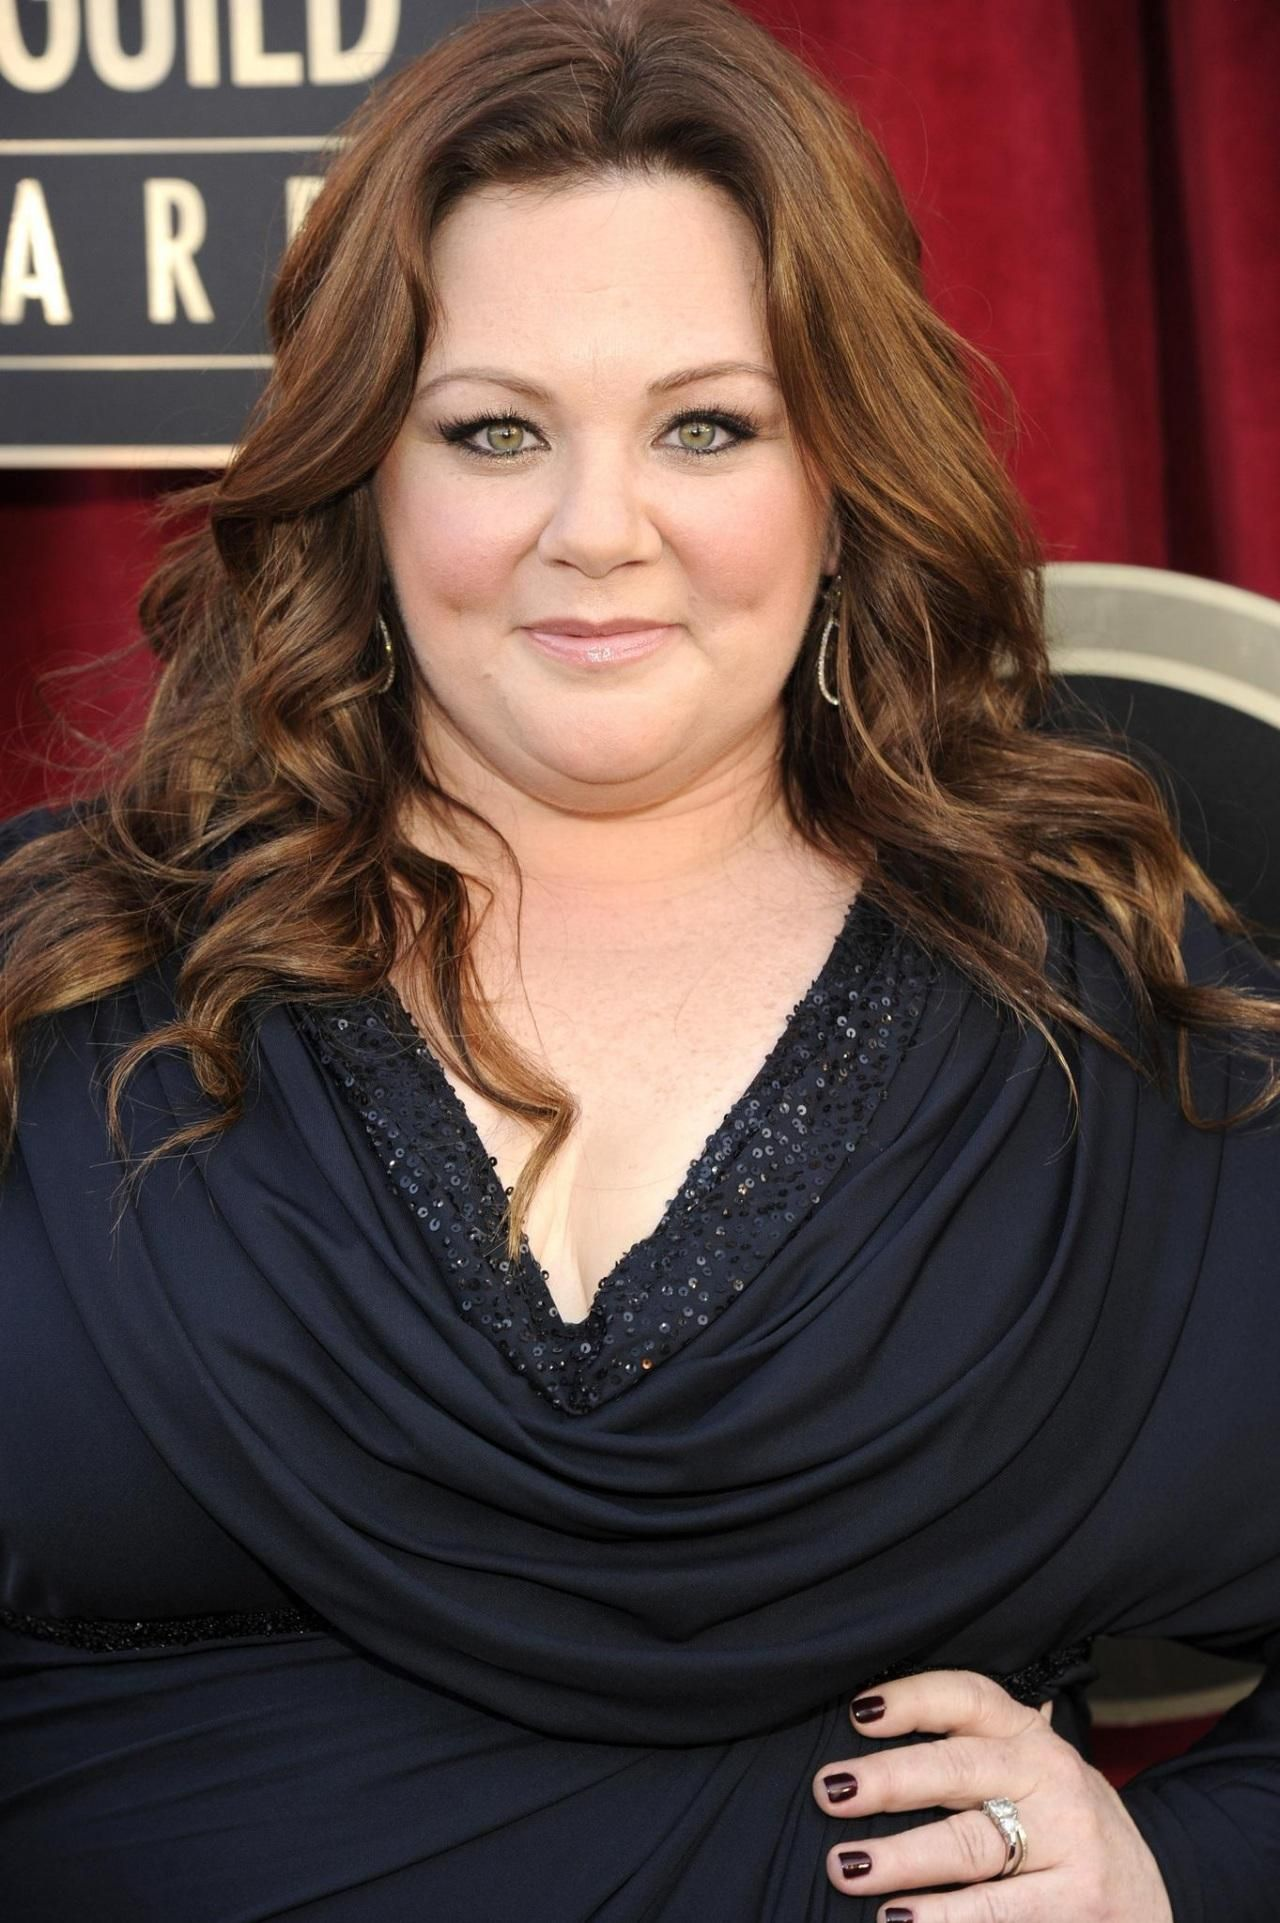 Pity, that Plus size blonde actress agree, this